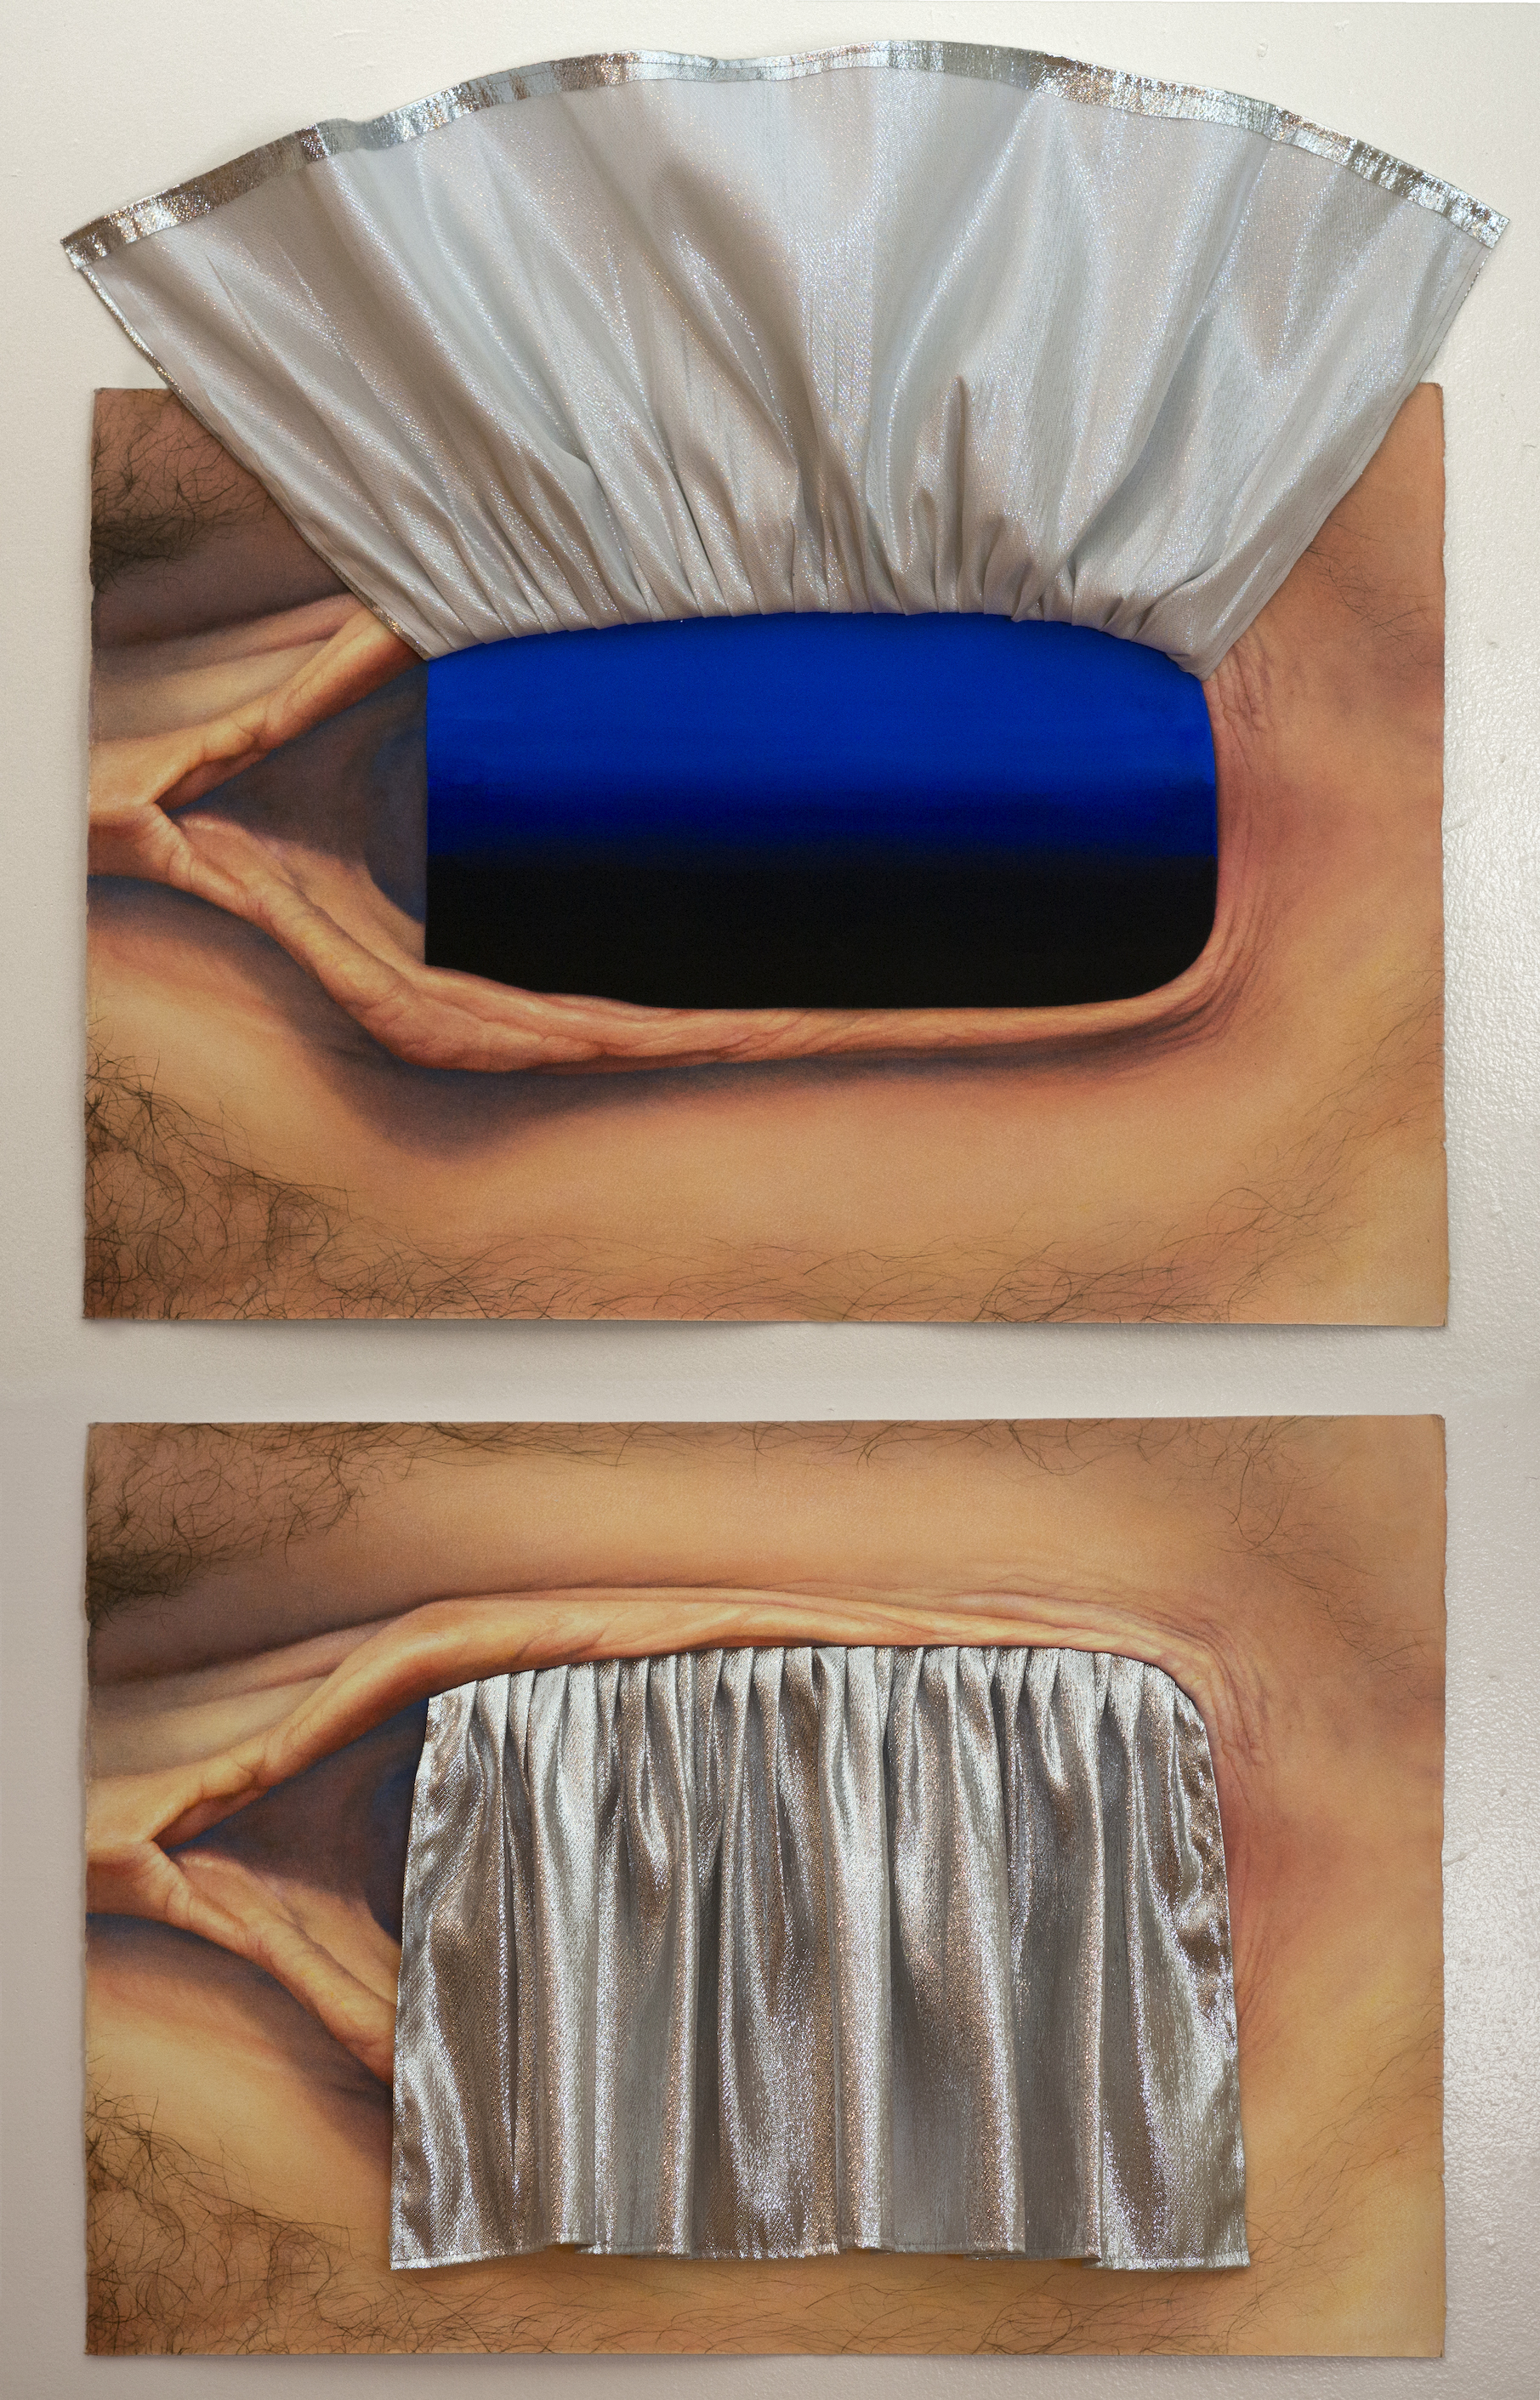 two views of {silver curtain/blue-black gradient, vagina}